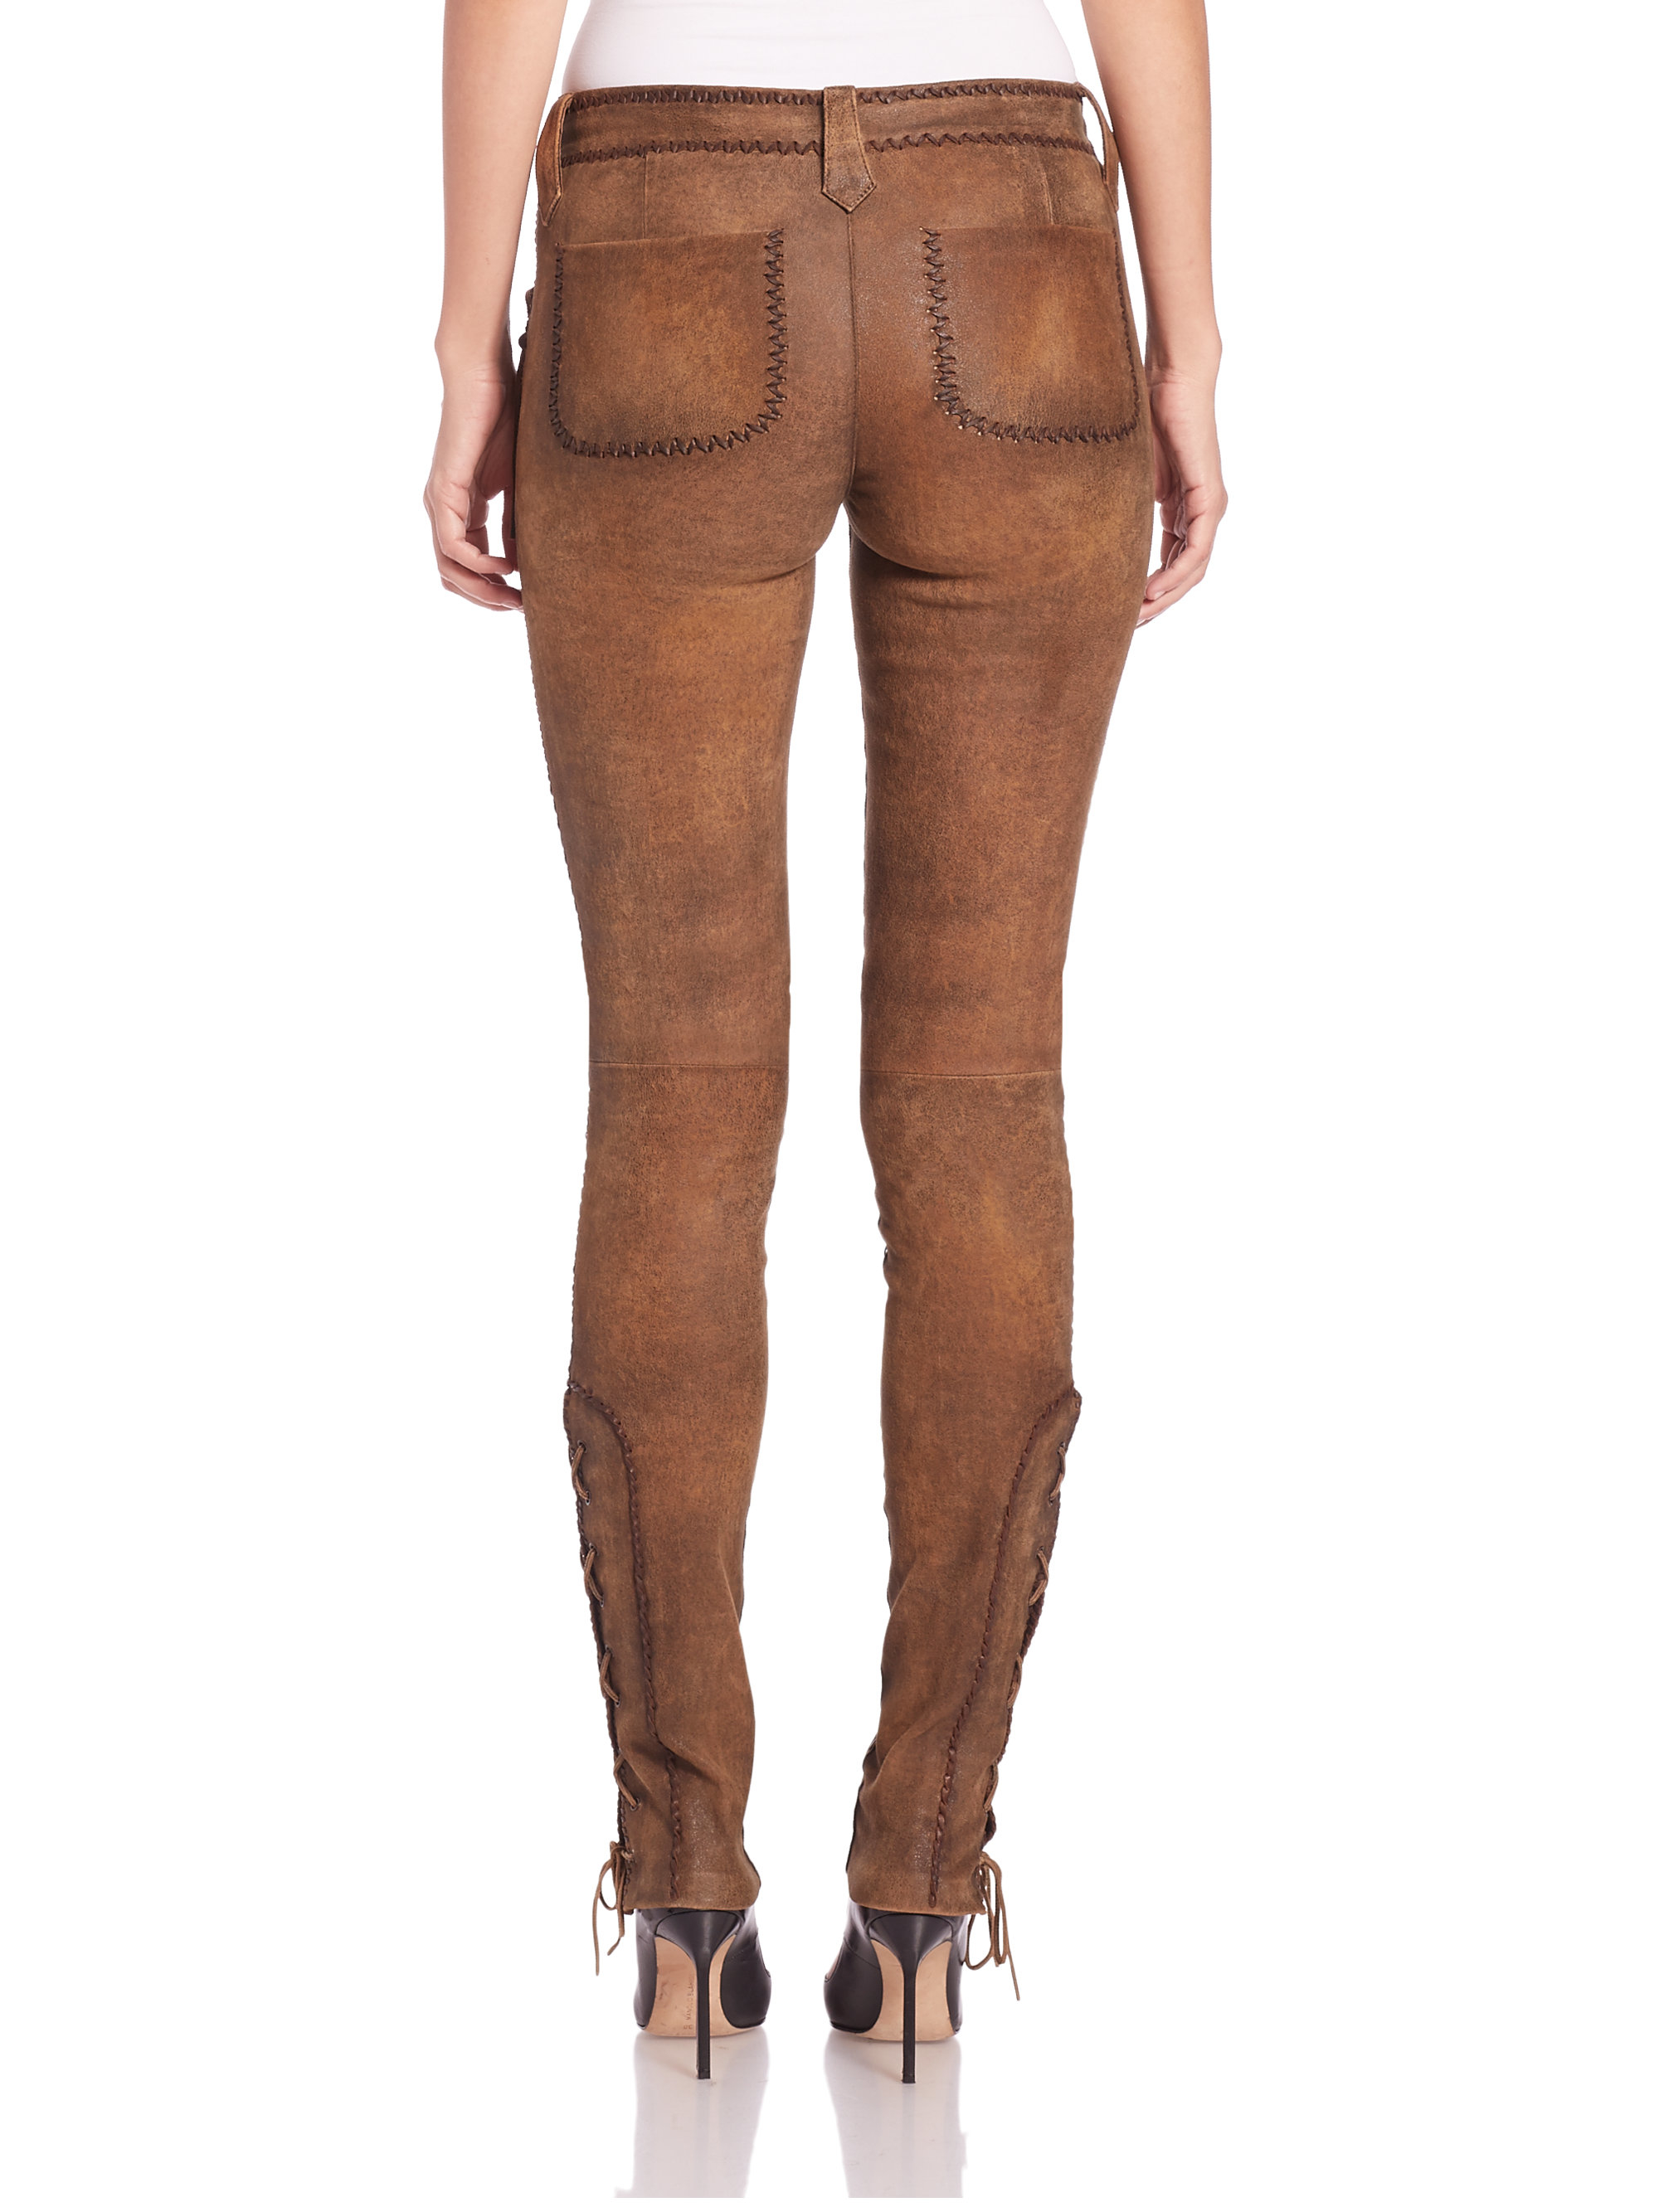 vivid and great in style hot-selling genuine details for Polo Ralph Lauren Brown Fringed Stretch Leather Pants